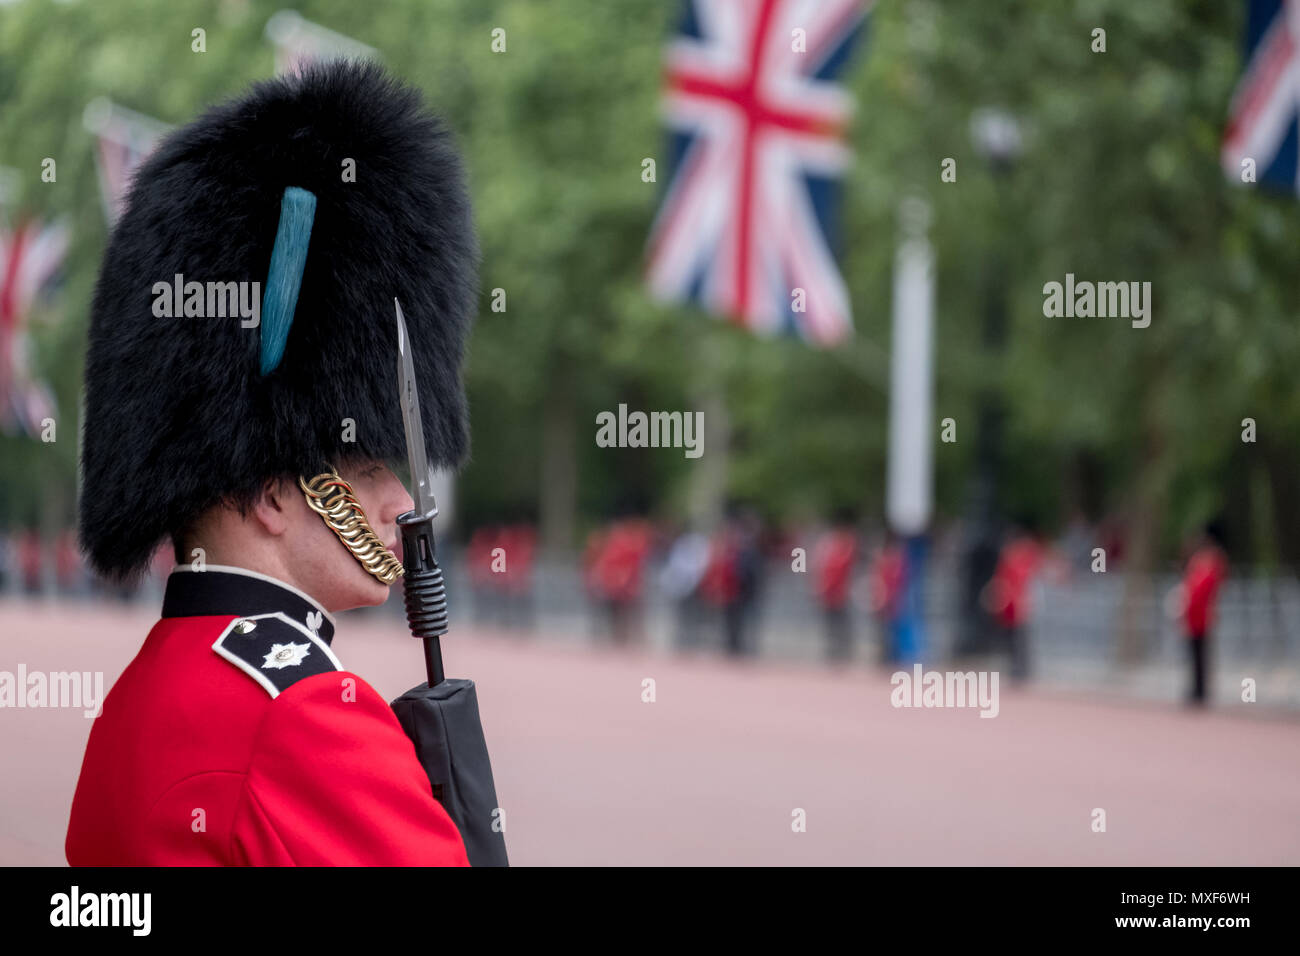 royal guard soldier in red and black uniform and bearskin hat lines